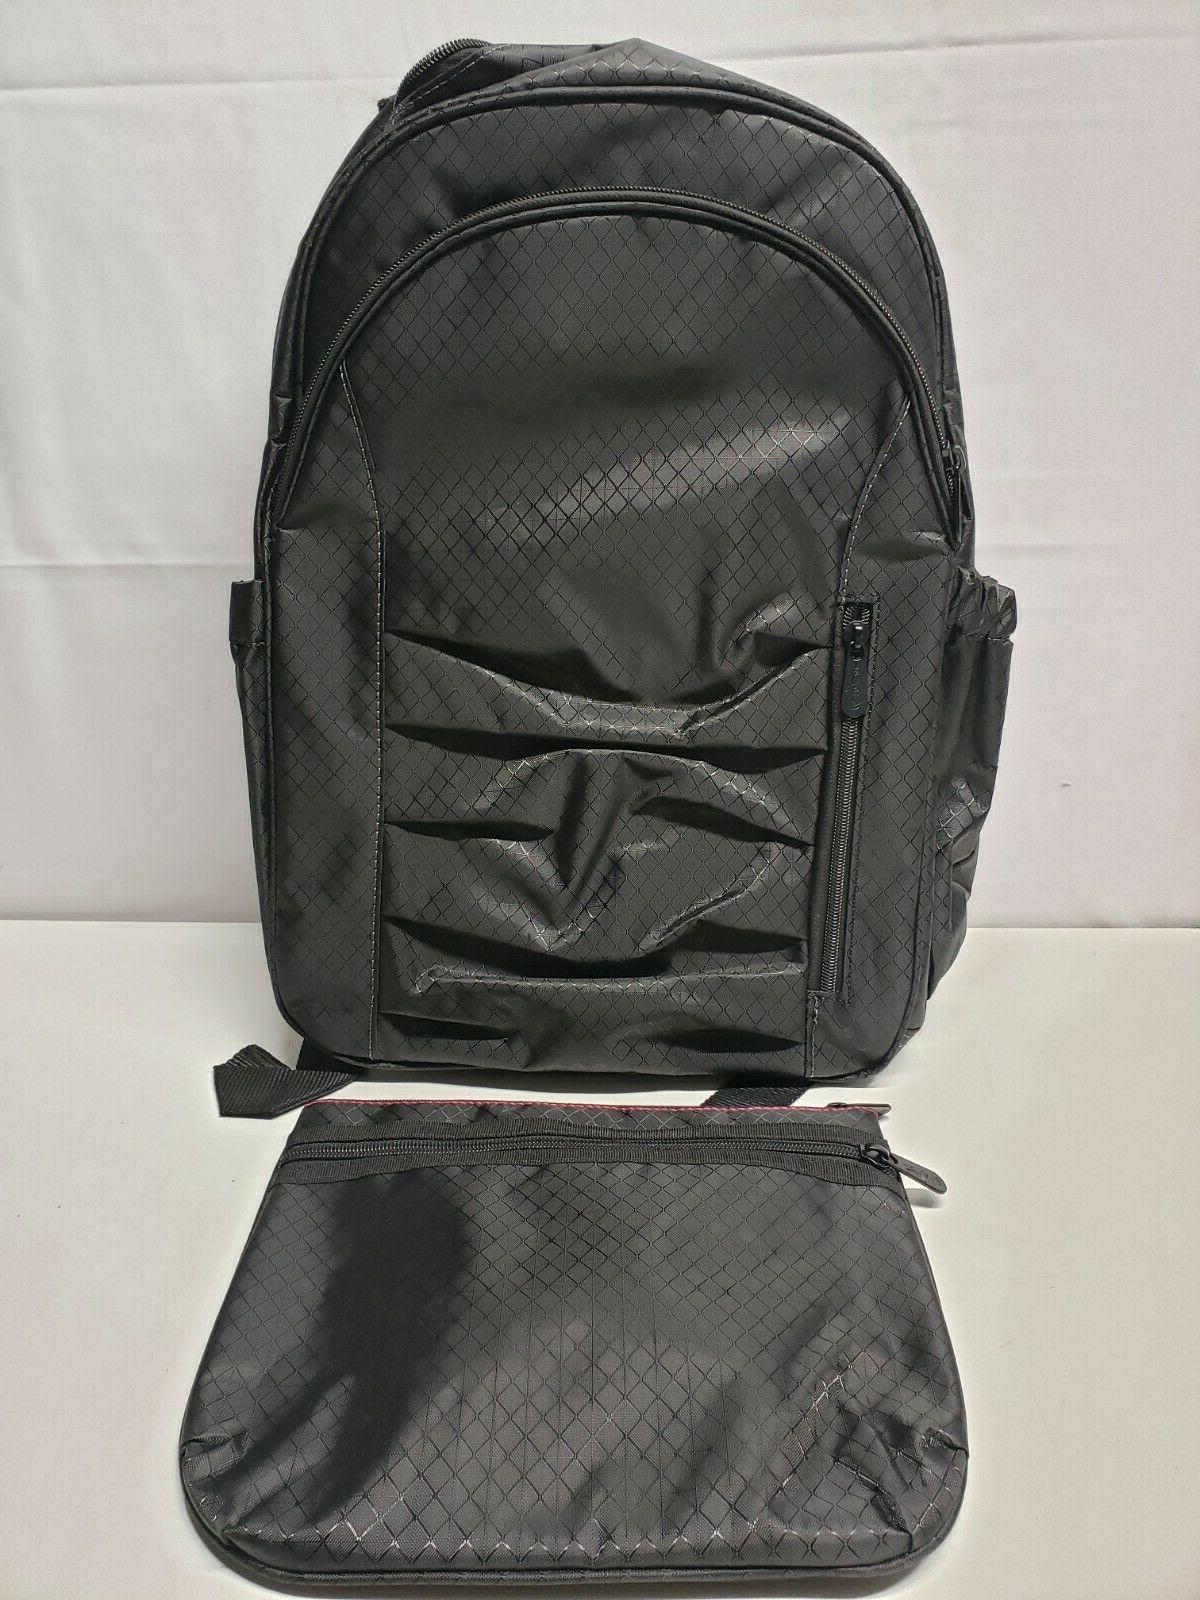 thirty one retired black her deluxe backpack